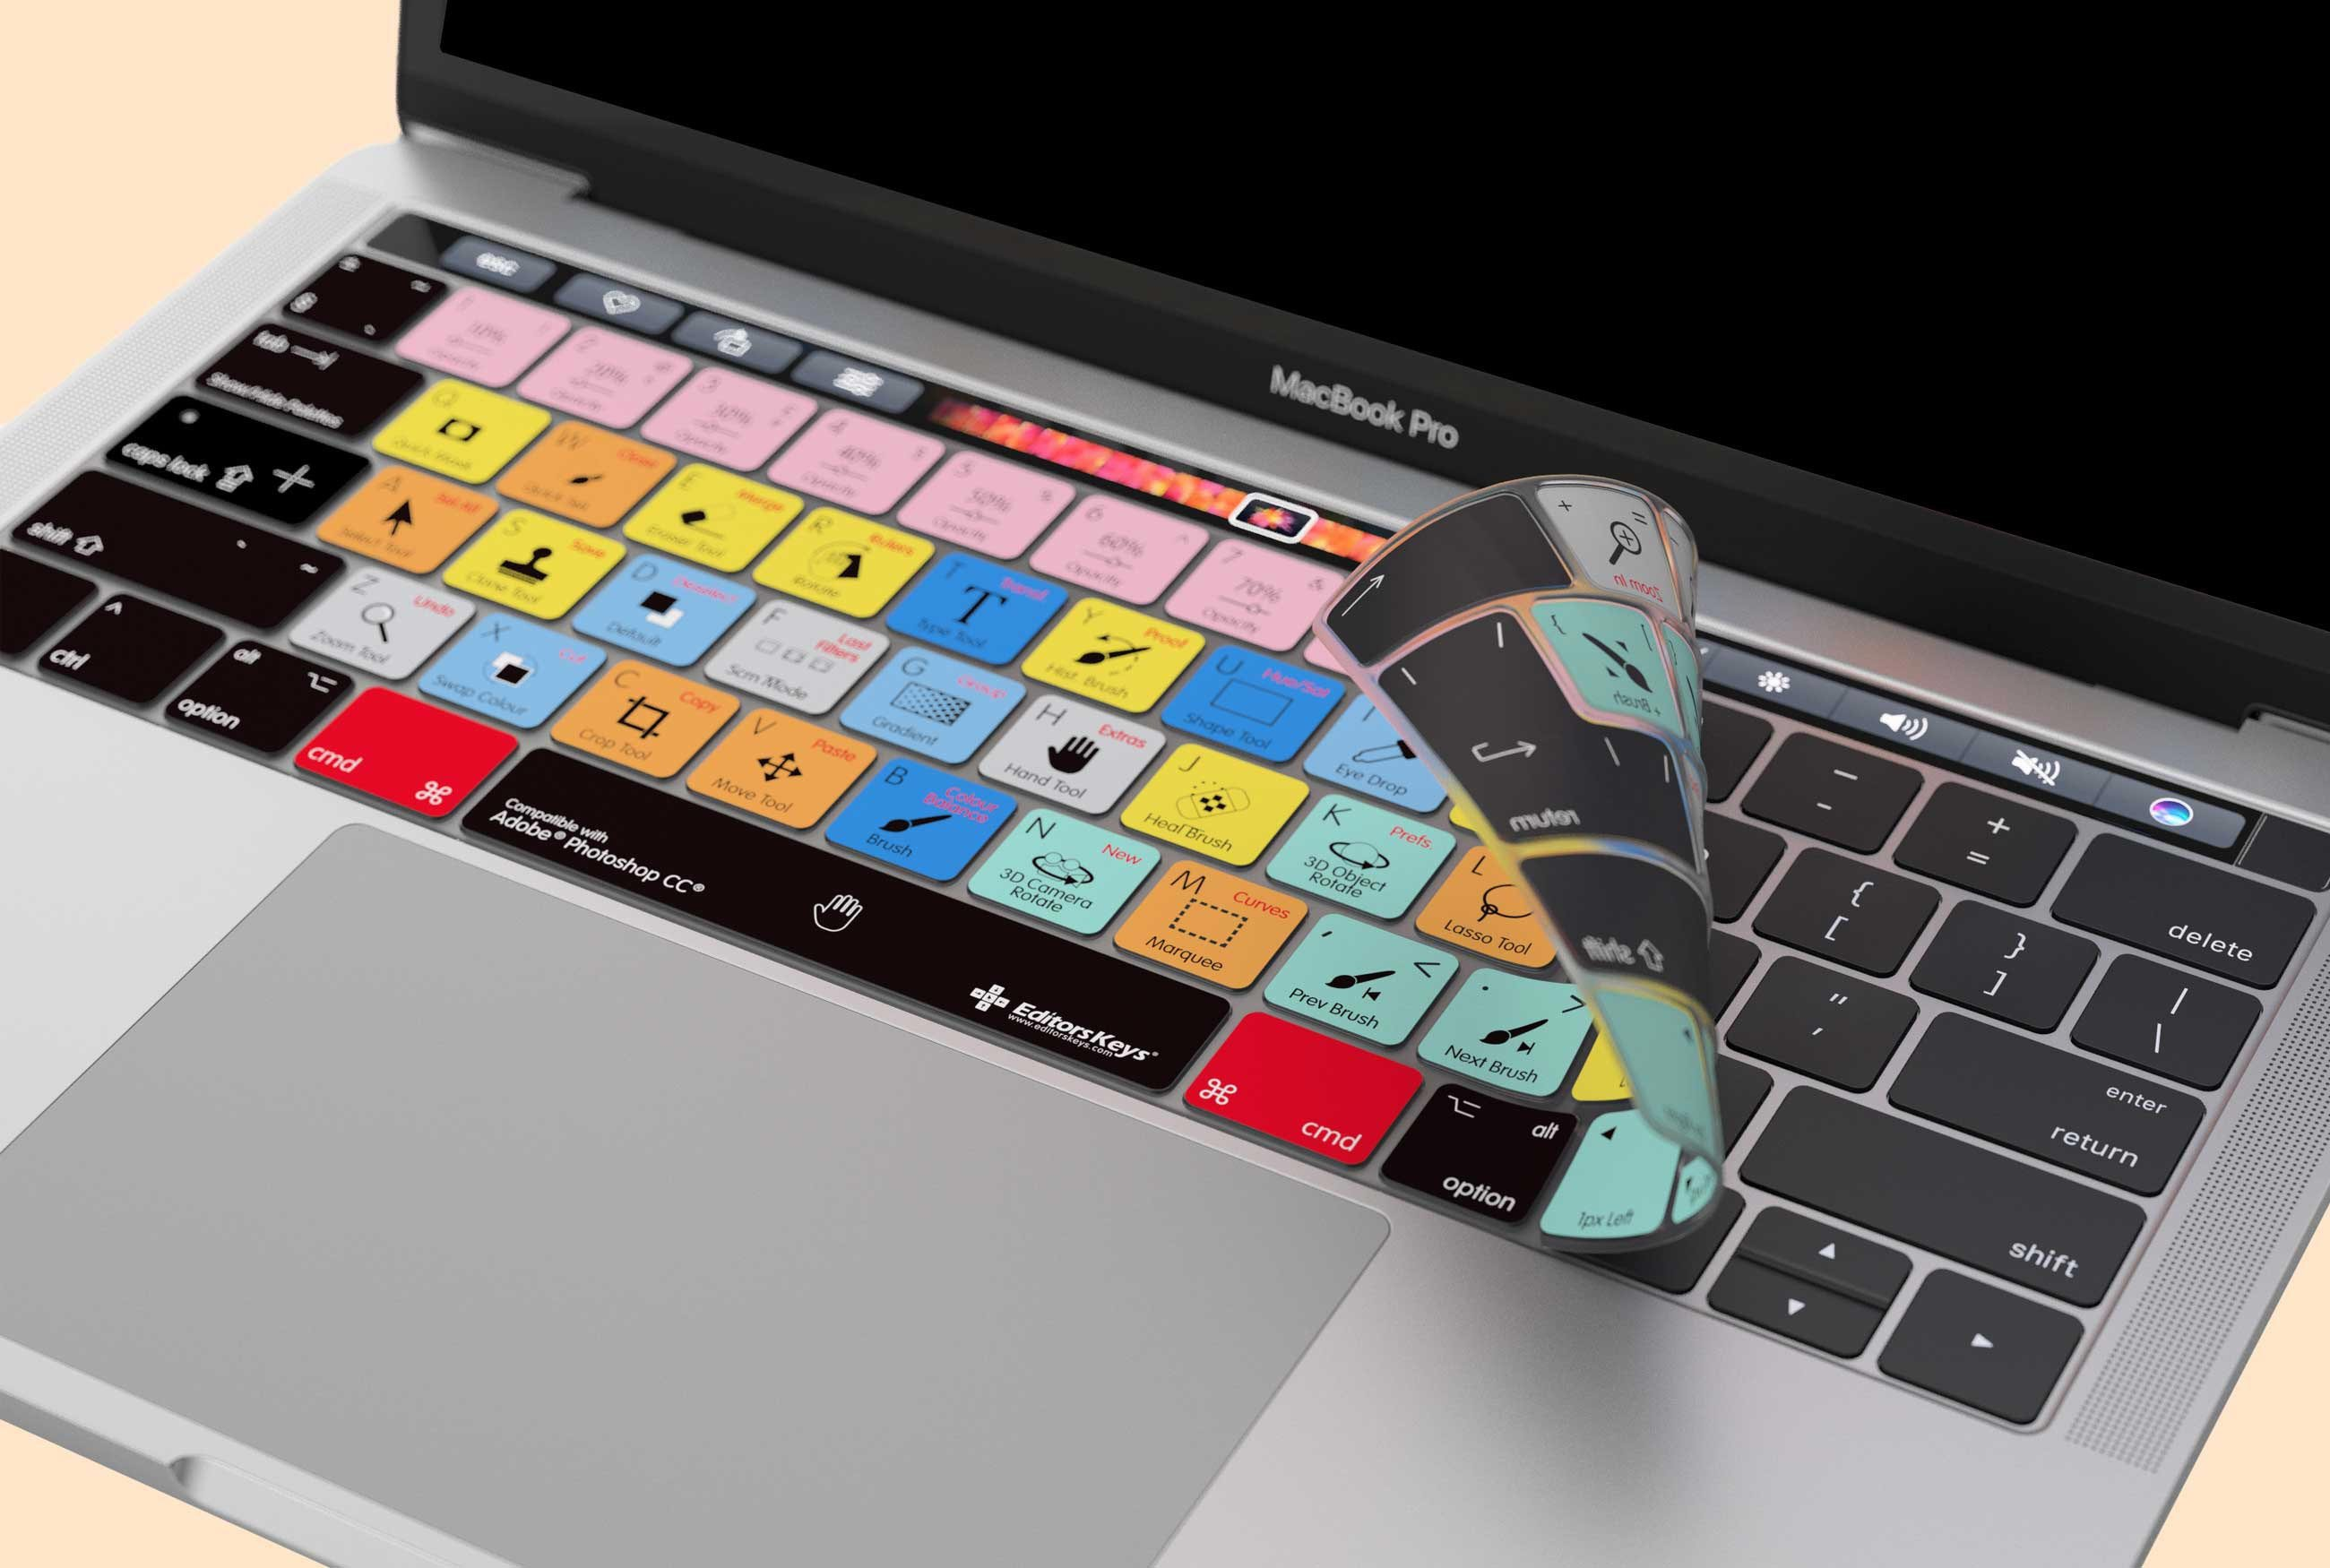 6e9c8154d16 Keyboard Covers for Adobe Premiere, Final Cut Pro X, Logic Pro X,  Lightroom, Pro Tools and Many More Applications - Not Any Gadgets